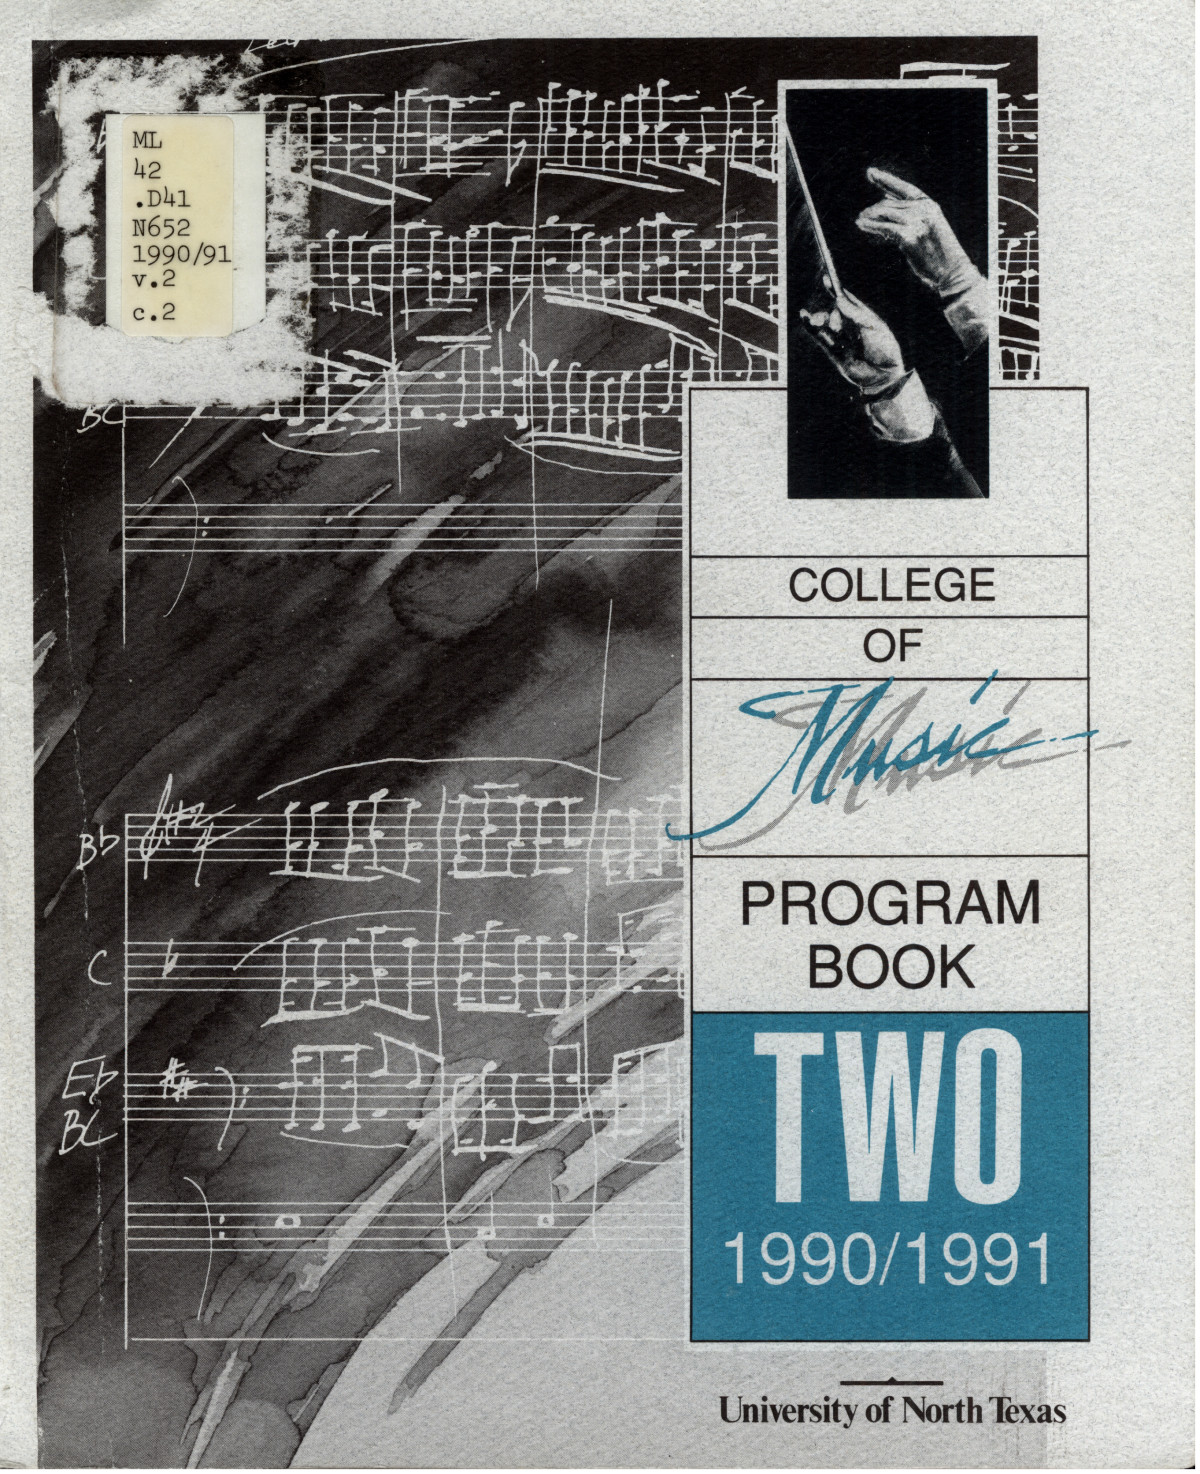 College of Music program book 1990-1991 Vol. 2                                                                                                      [Sequence #]: 1 of 417